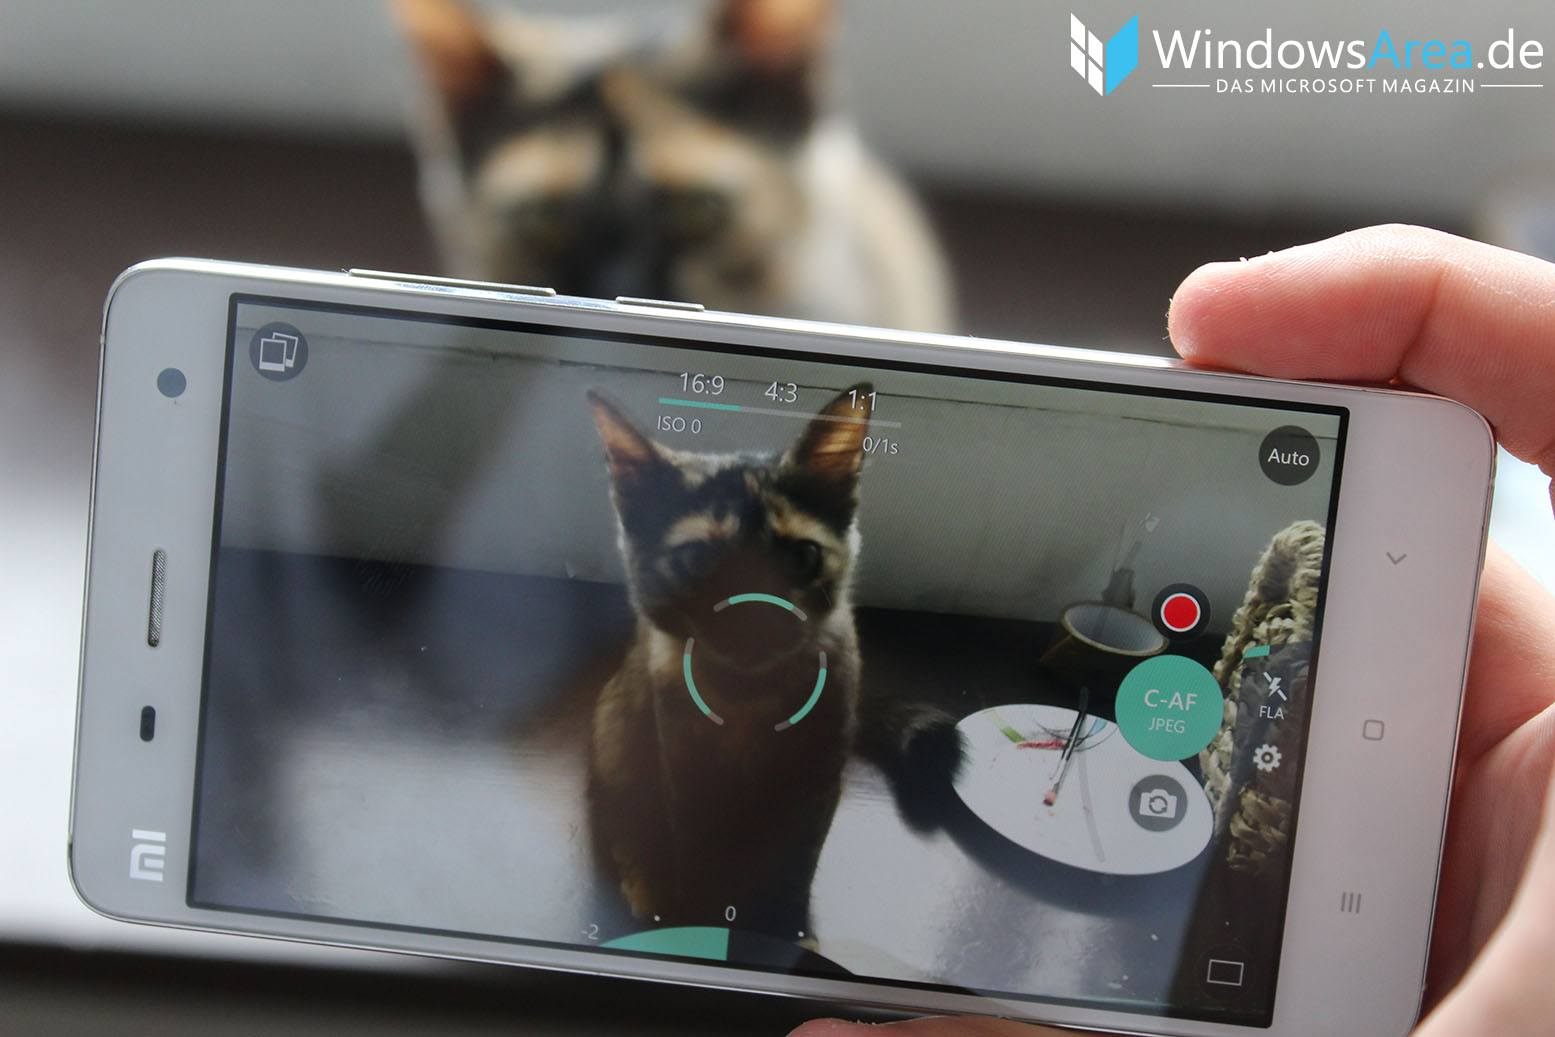 proshot-windows-10-mobile-katze-xiaomi-mi4